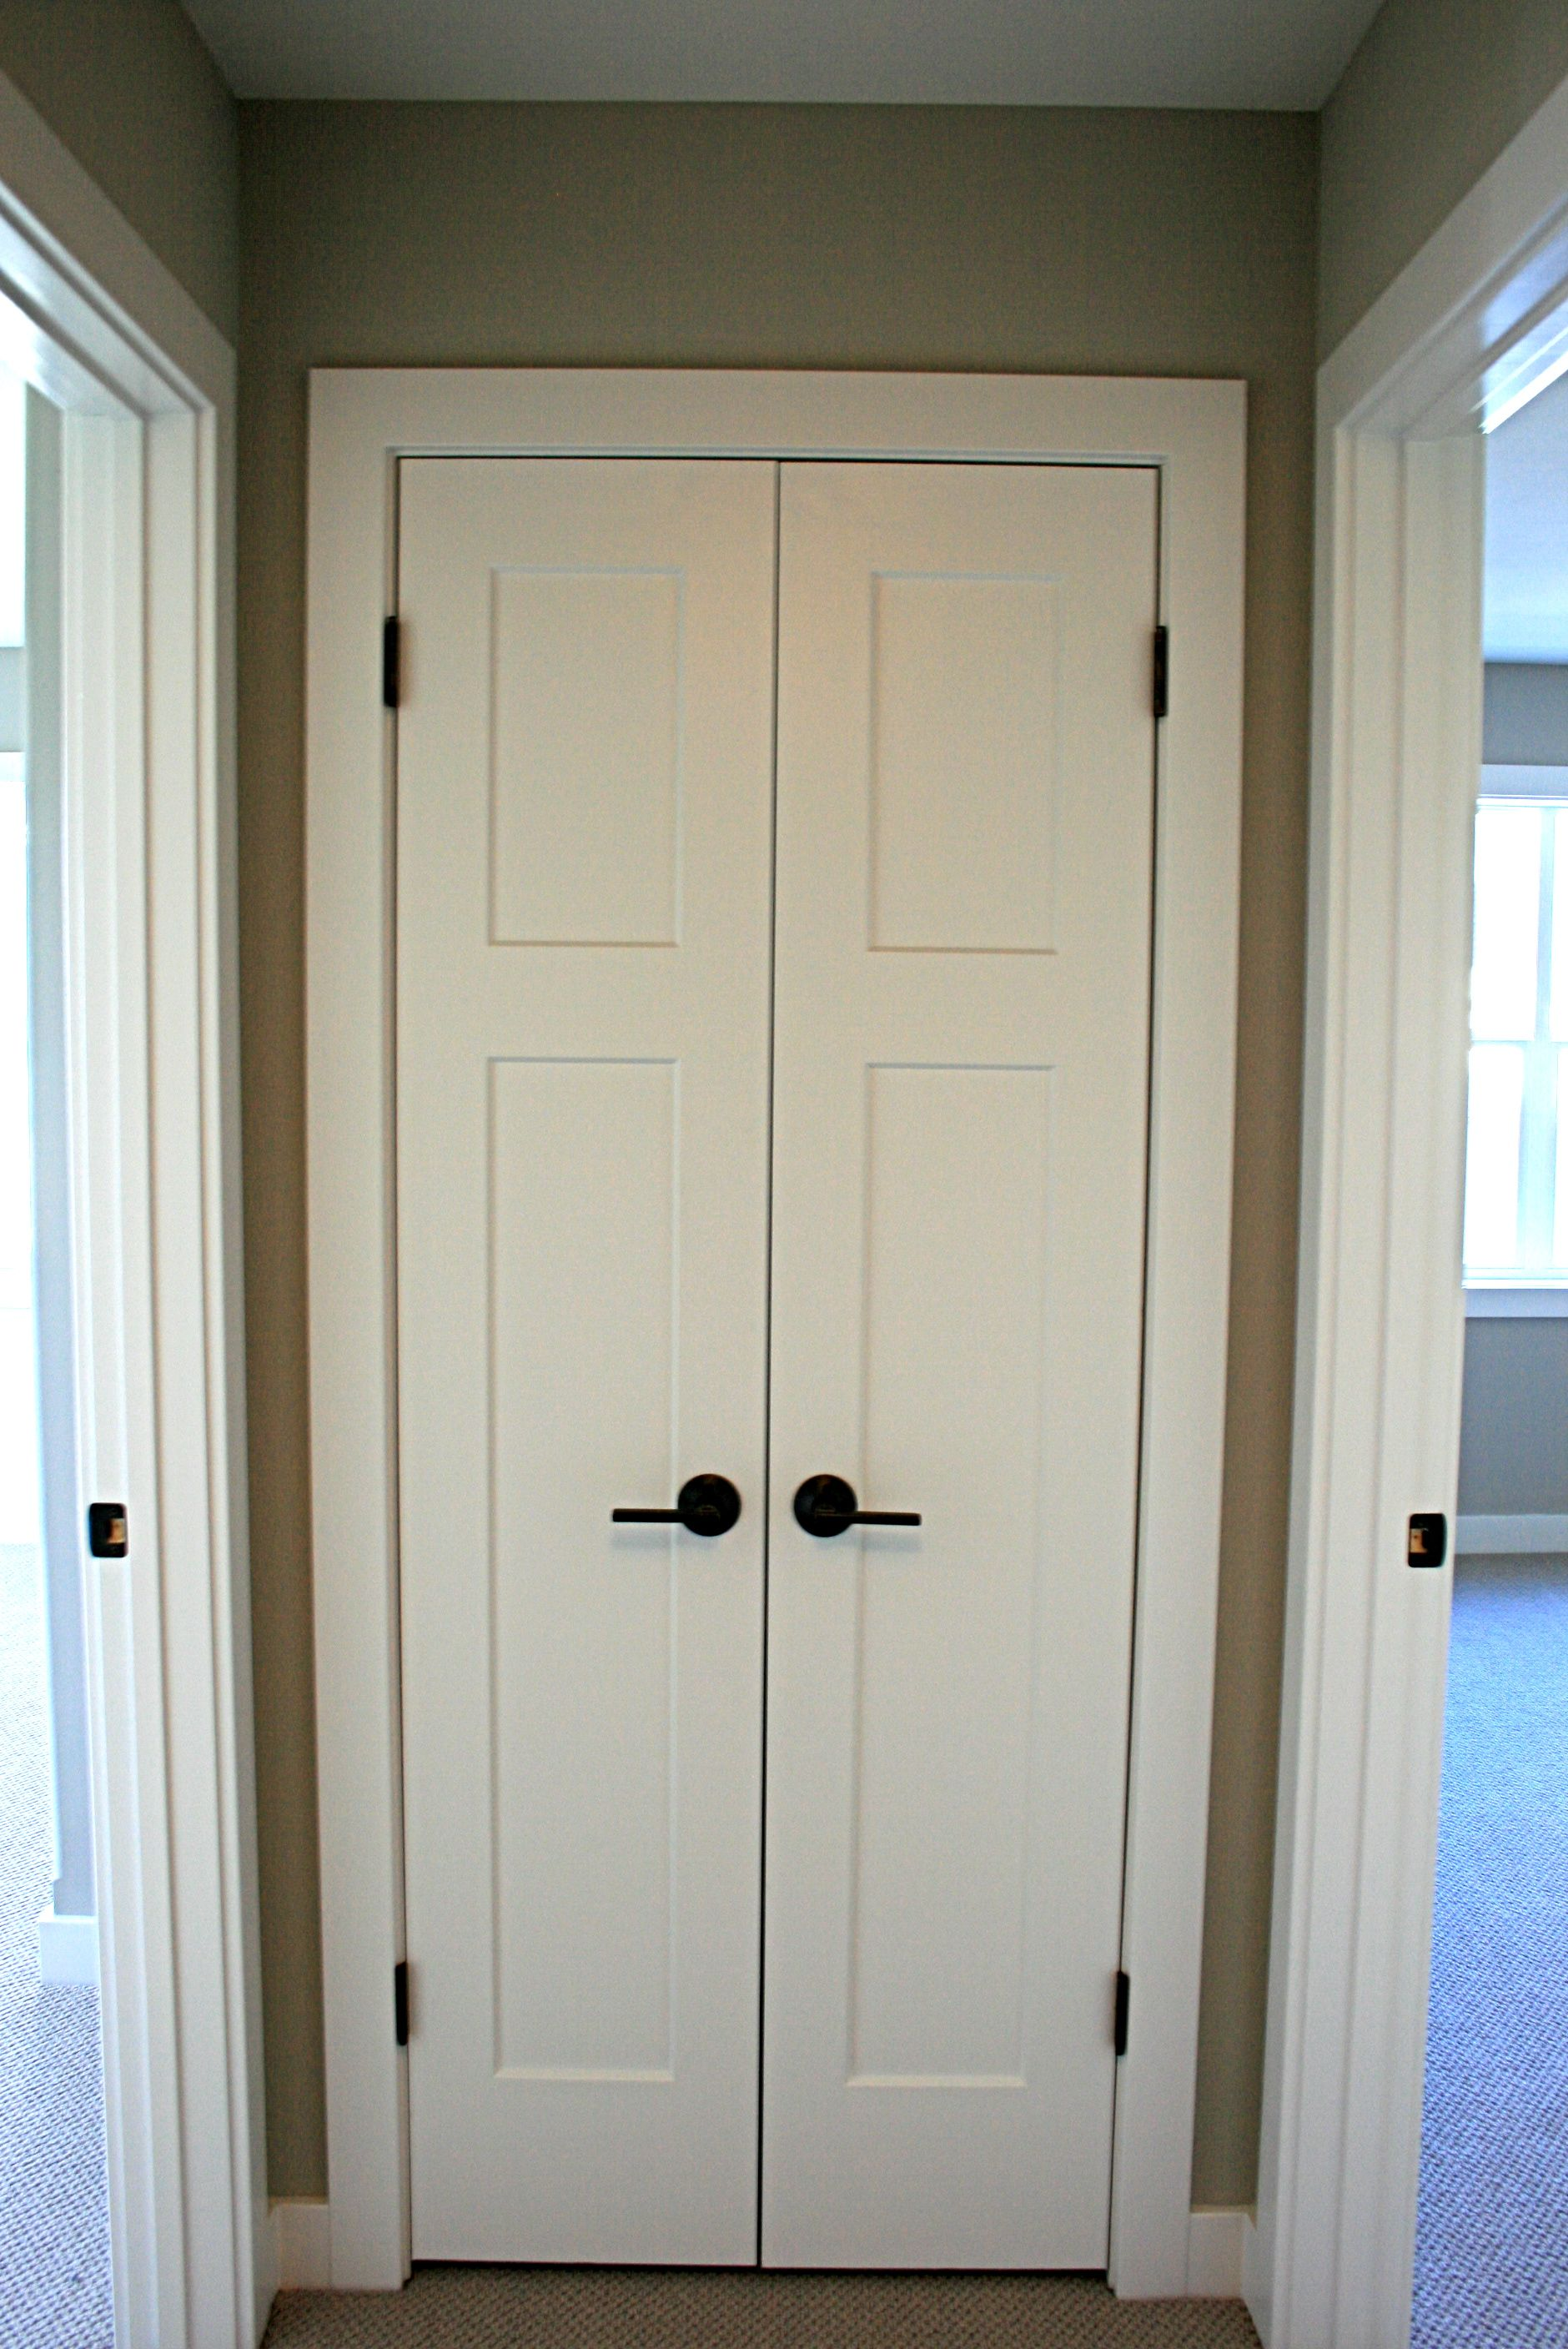 Fascinating Closet Door Ideas Suggestions For Modern Home Design Closet Door Ideas